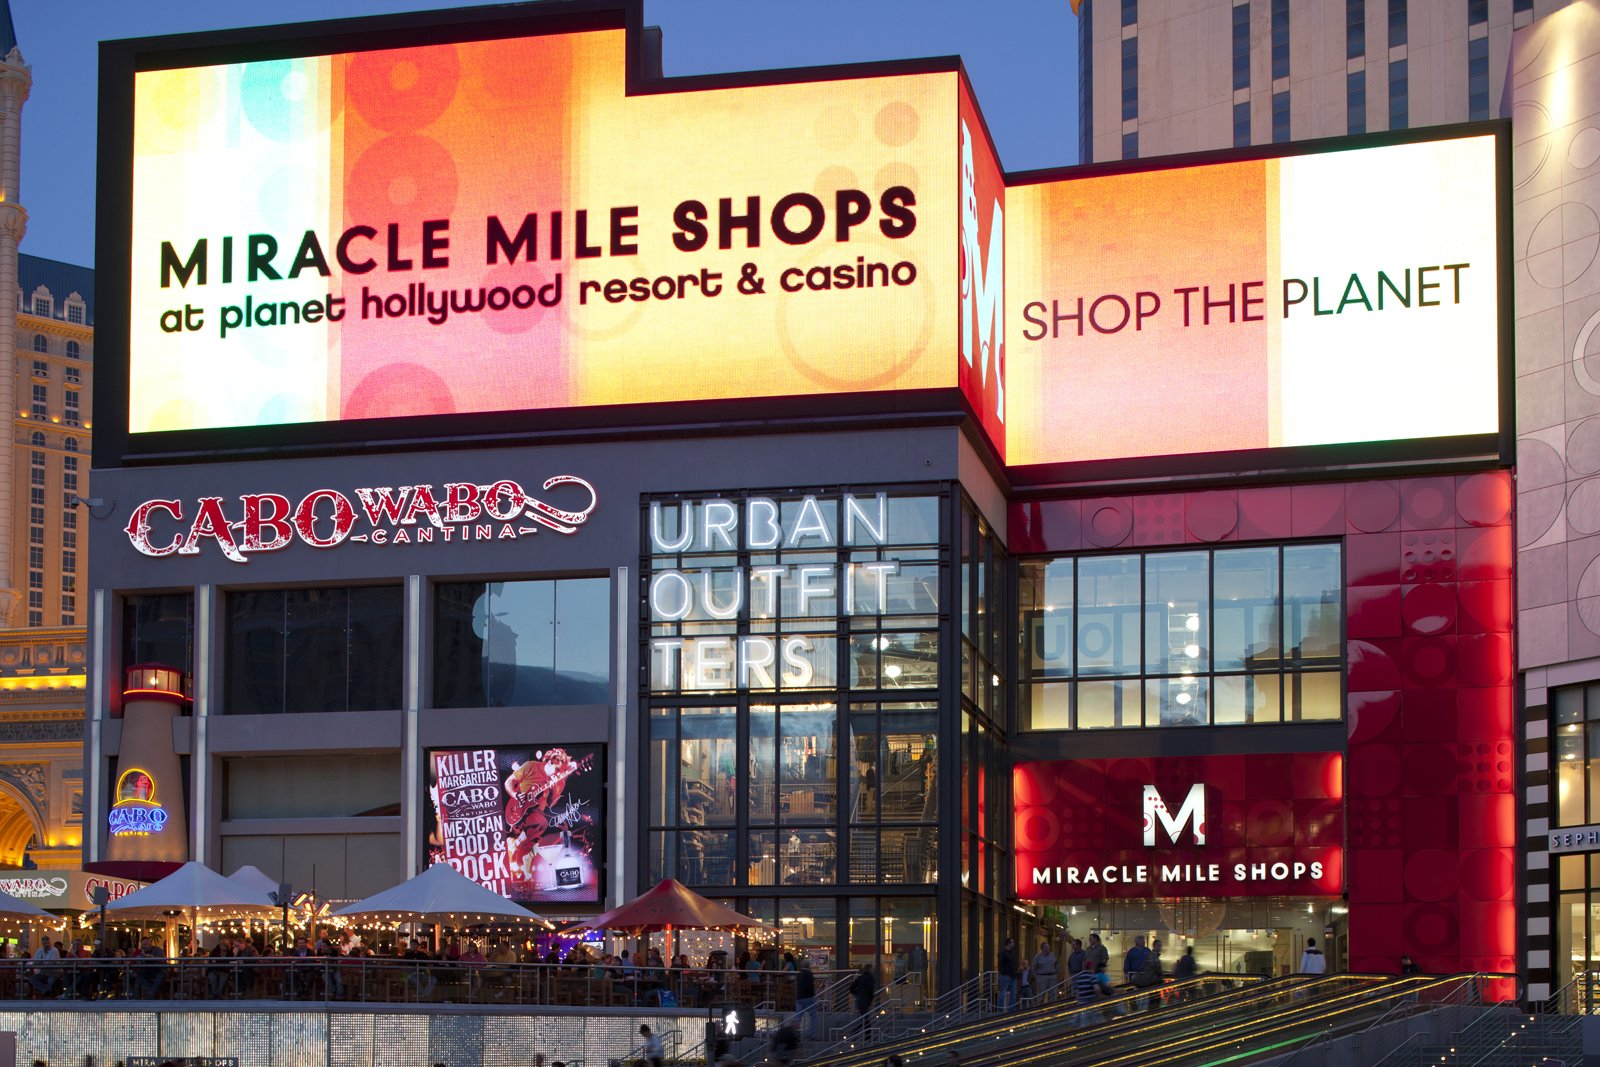 Miracle Mile Shops | Things to Do in Las Vegas at Planet Hollywood